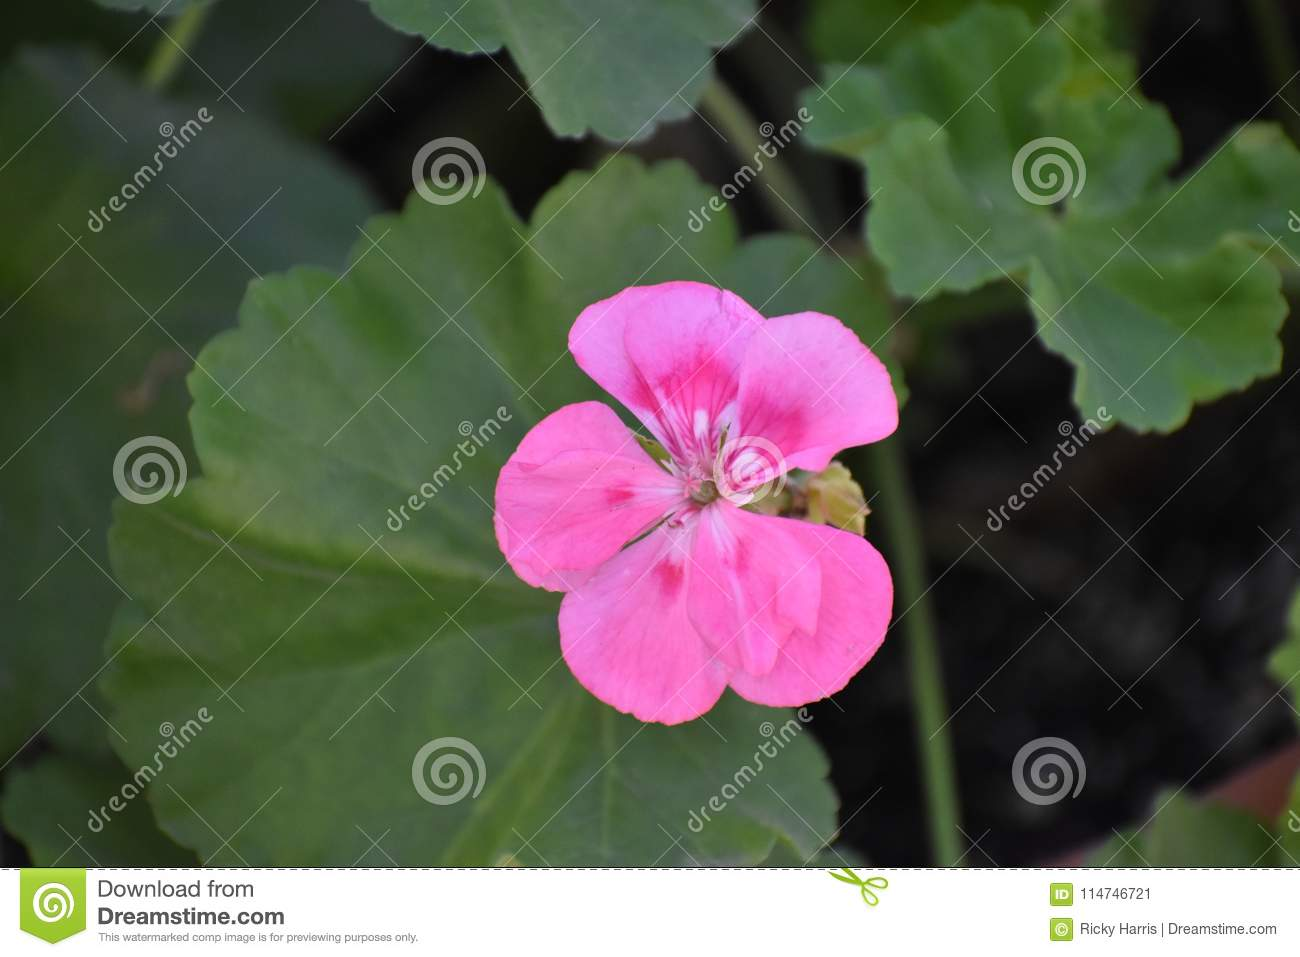 Pink flower found in texas stock image image of leaf 114746721 download pink flower found in texas stock image image of leaf 114746721 mightylinksfo